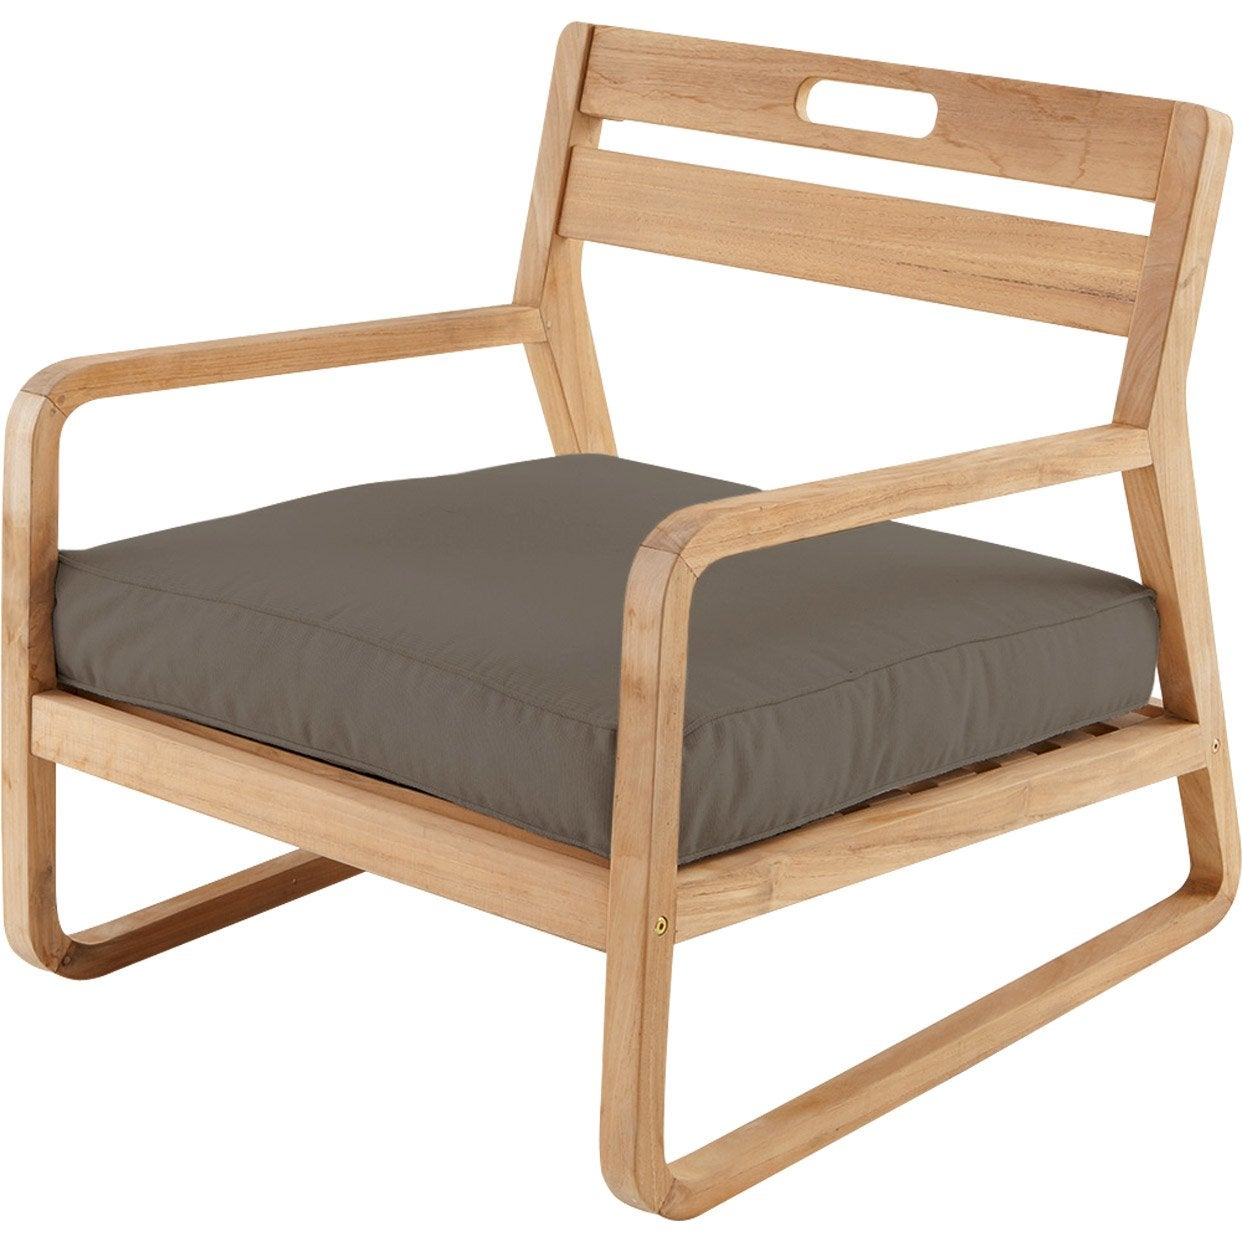 Chaise basse de jardin en bois resort naturel leroy merlin for Chaise bercante en bois